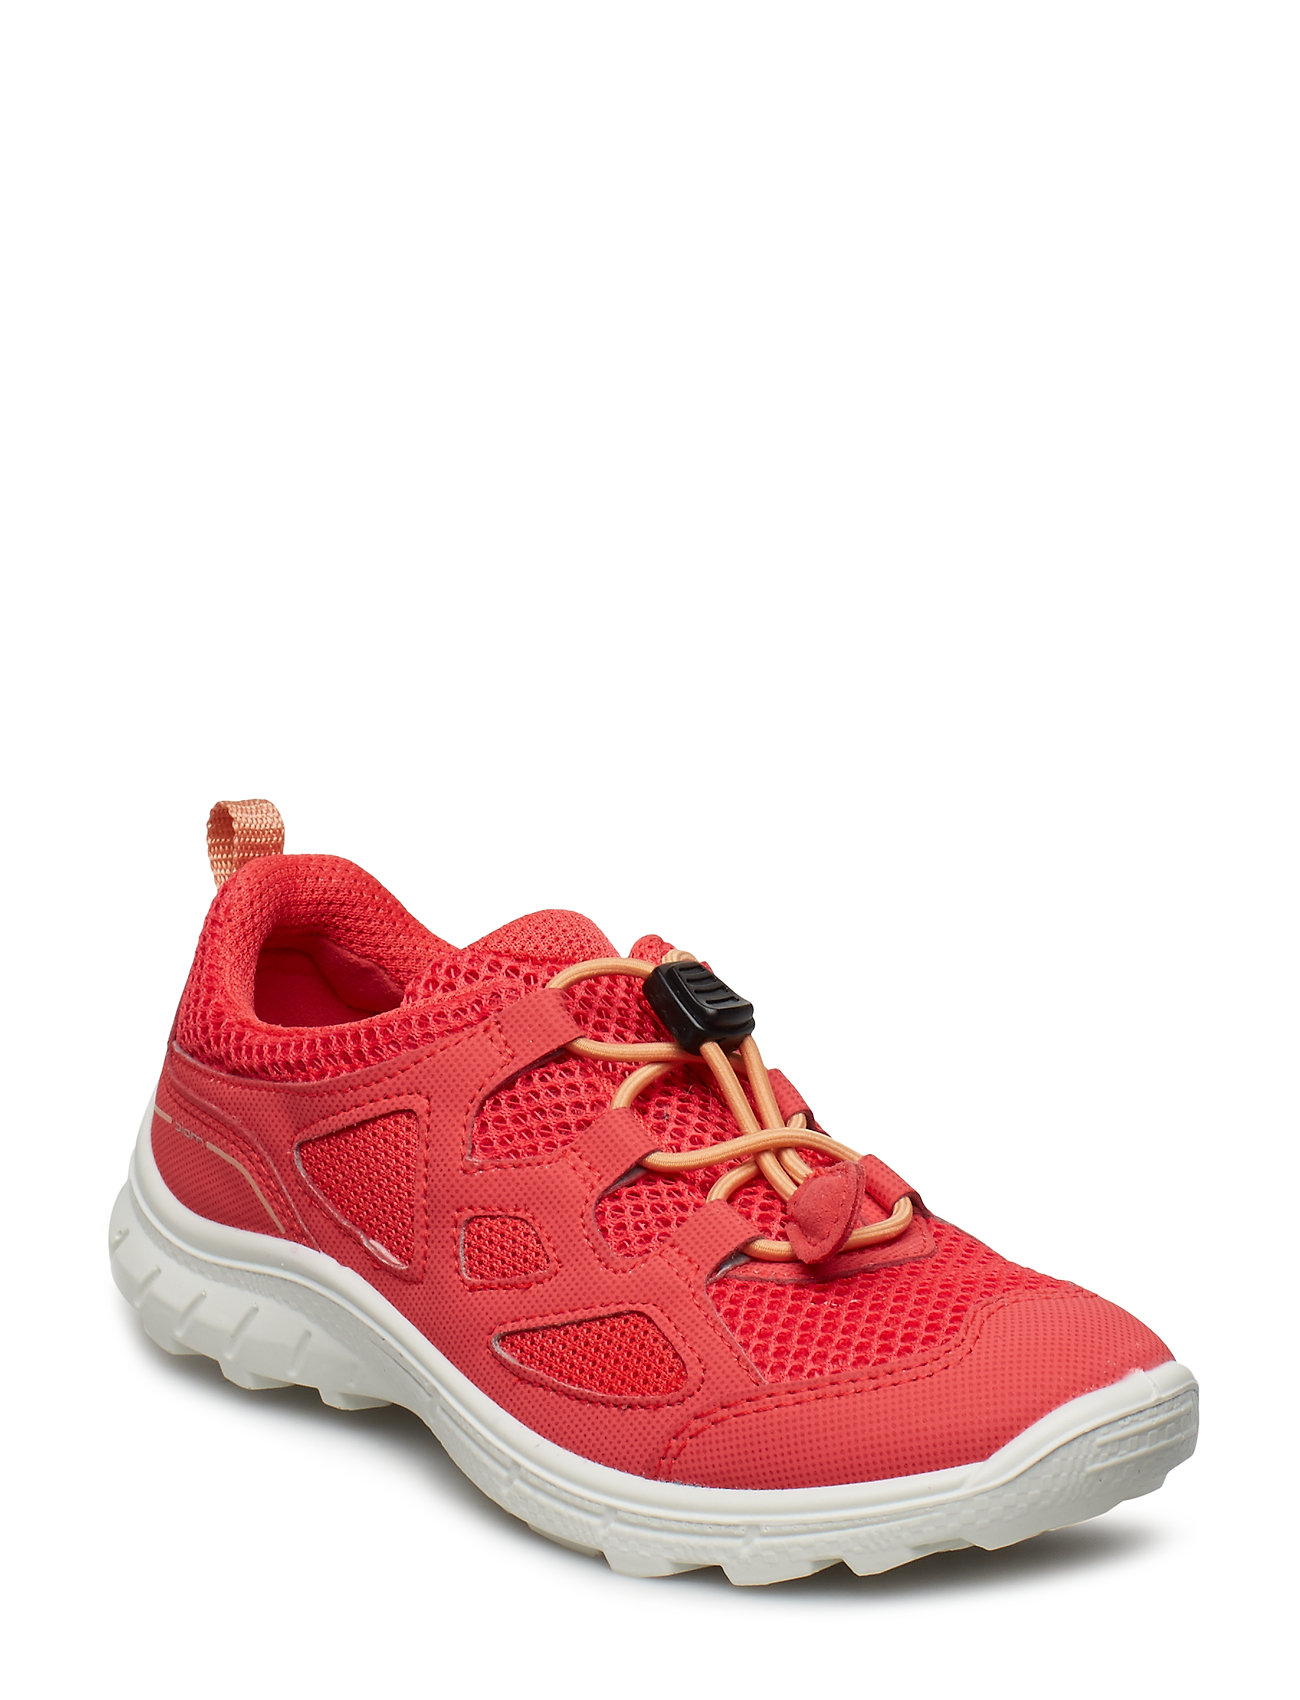 ECCO BIOM TRAIL KIDS - TEABERRY